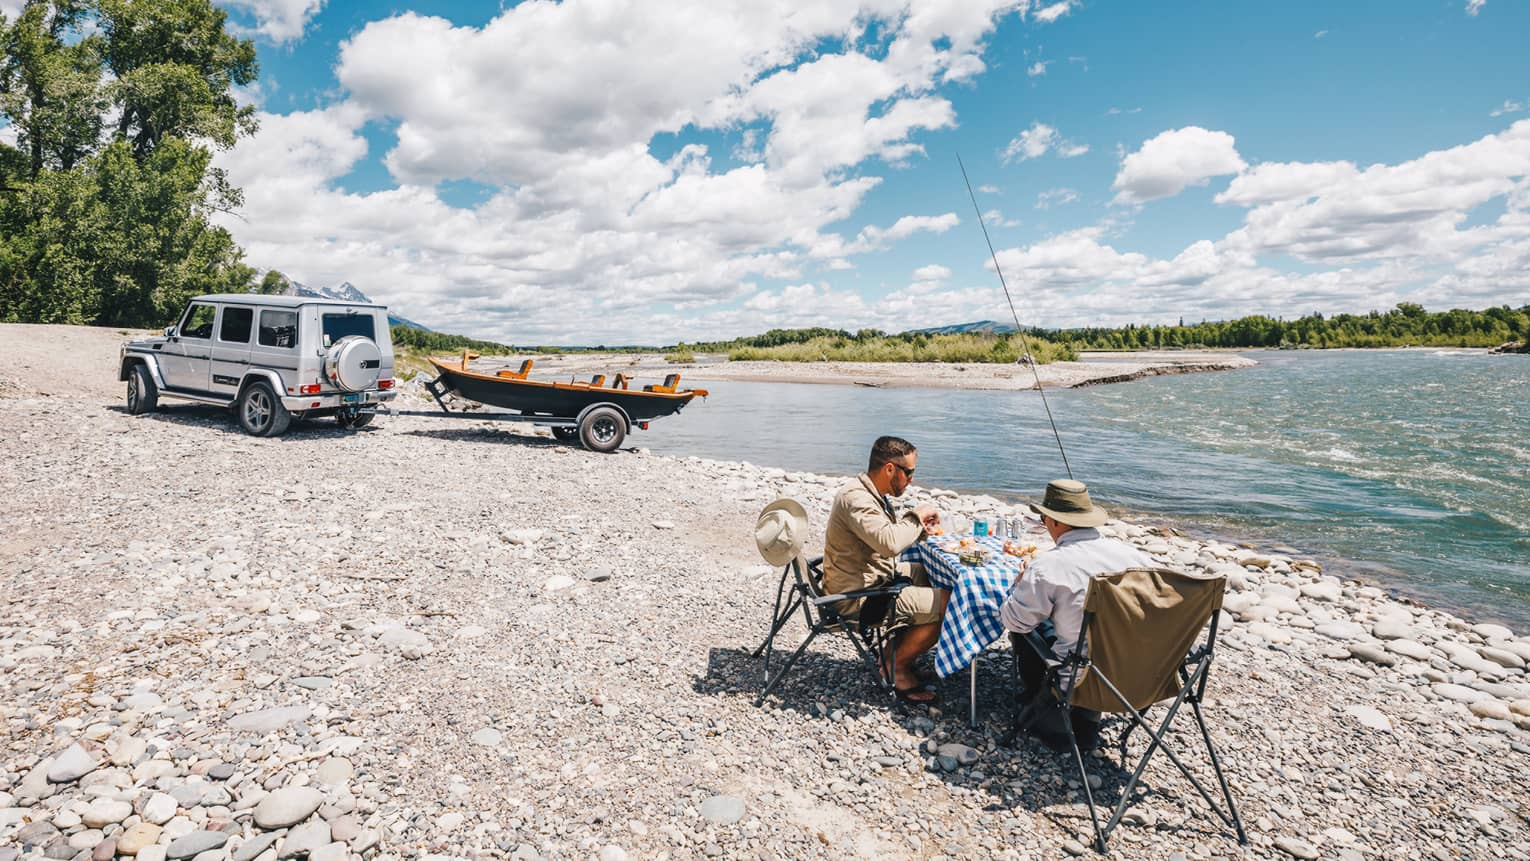 Two fishermen sit at a small table for a lakeside picnic, their boat hitched to their SUV in the background